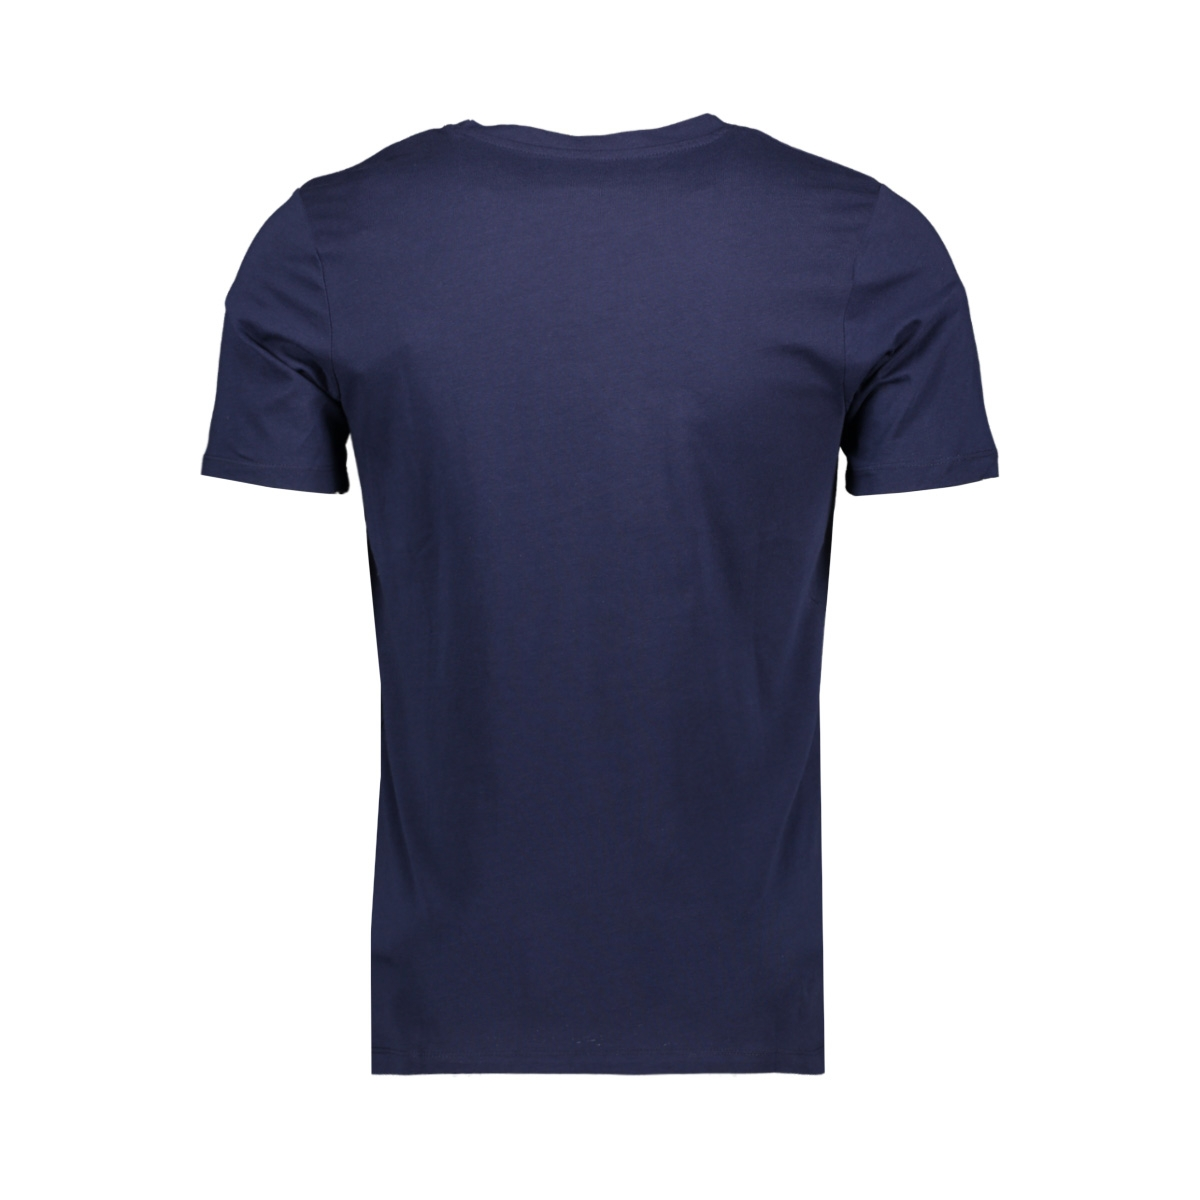 jcobooster tee ss crew neck june 19 12155989 jack & jones t-shirt maritime blue